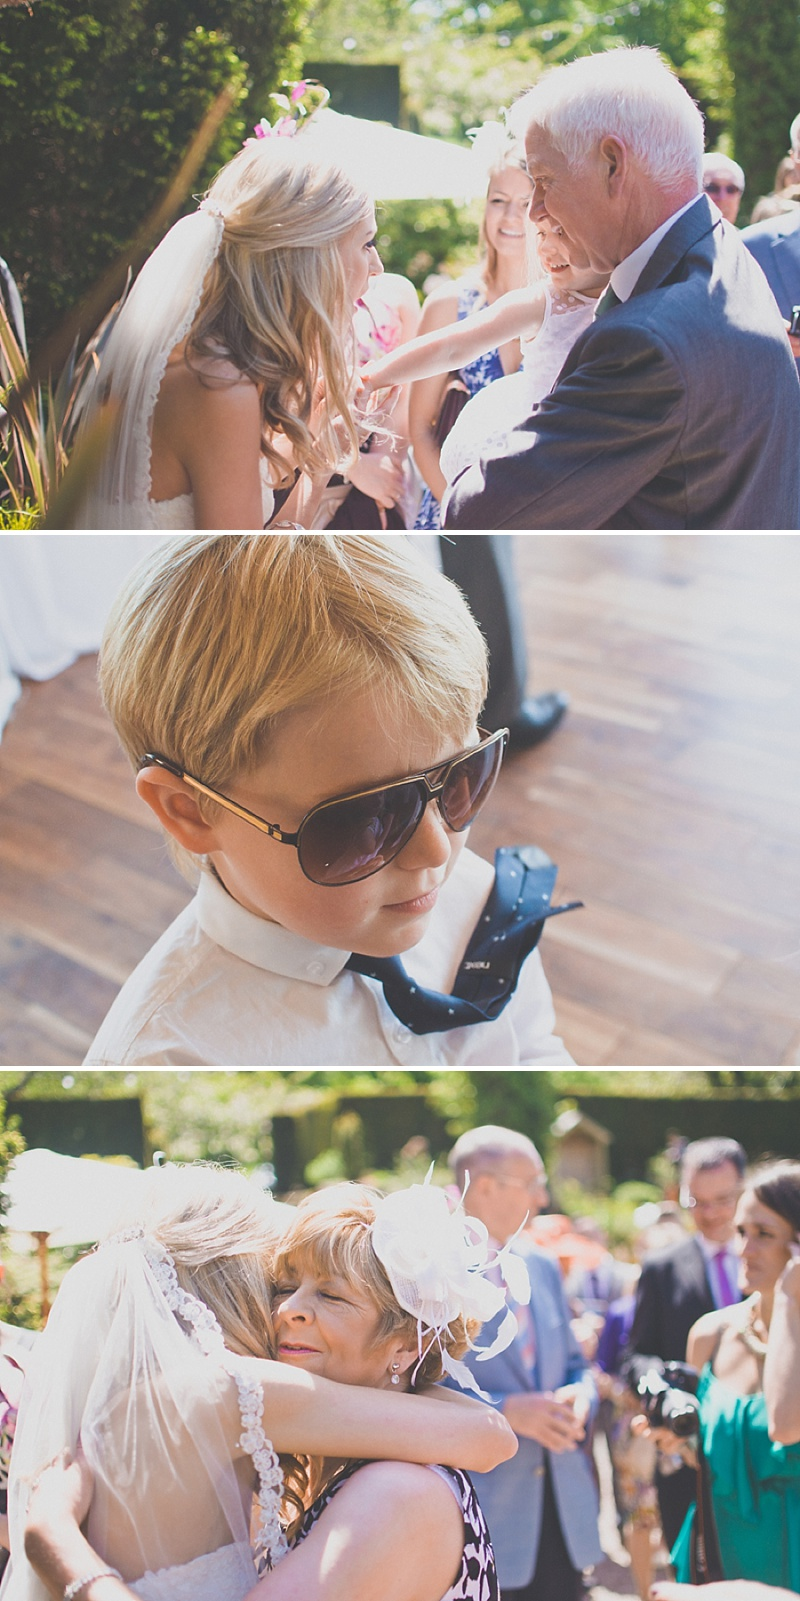 An Elegant White Themed Wedding At The Ness Botanic Gardens With Bride In Champagne From Blue By Enzoani With Aldo 'Corinne' Shoes Images By Rivington Photography_0008